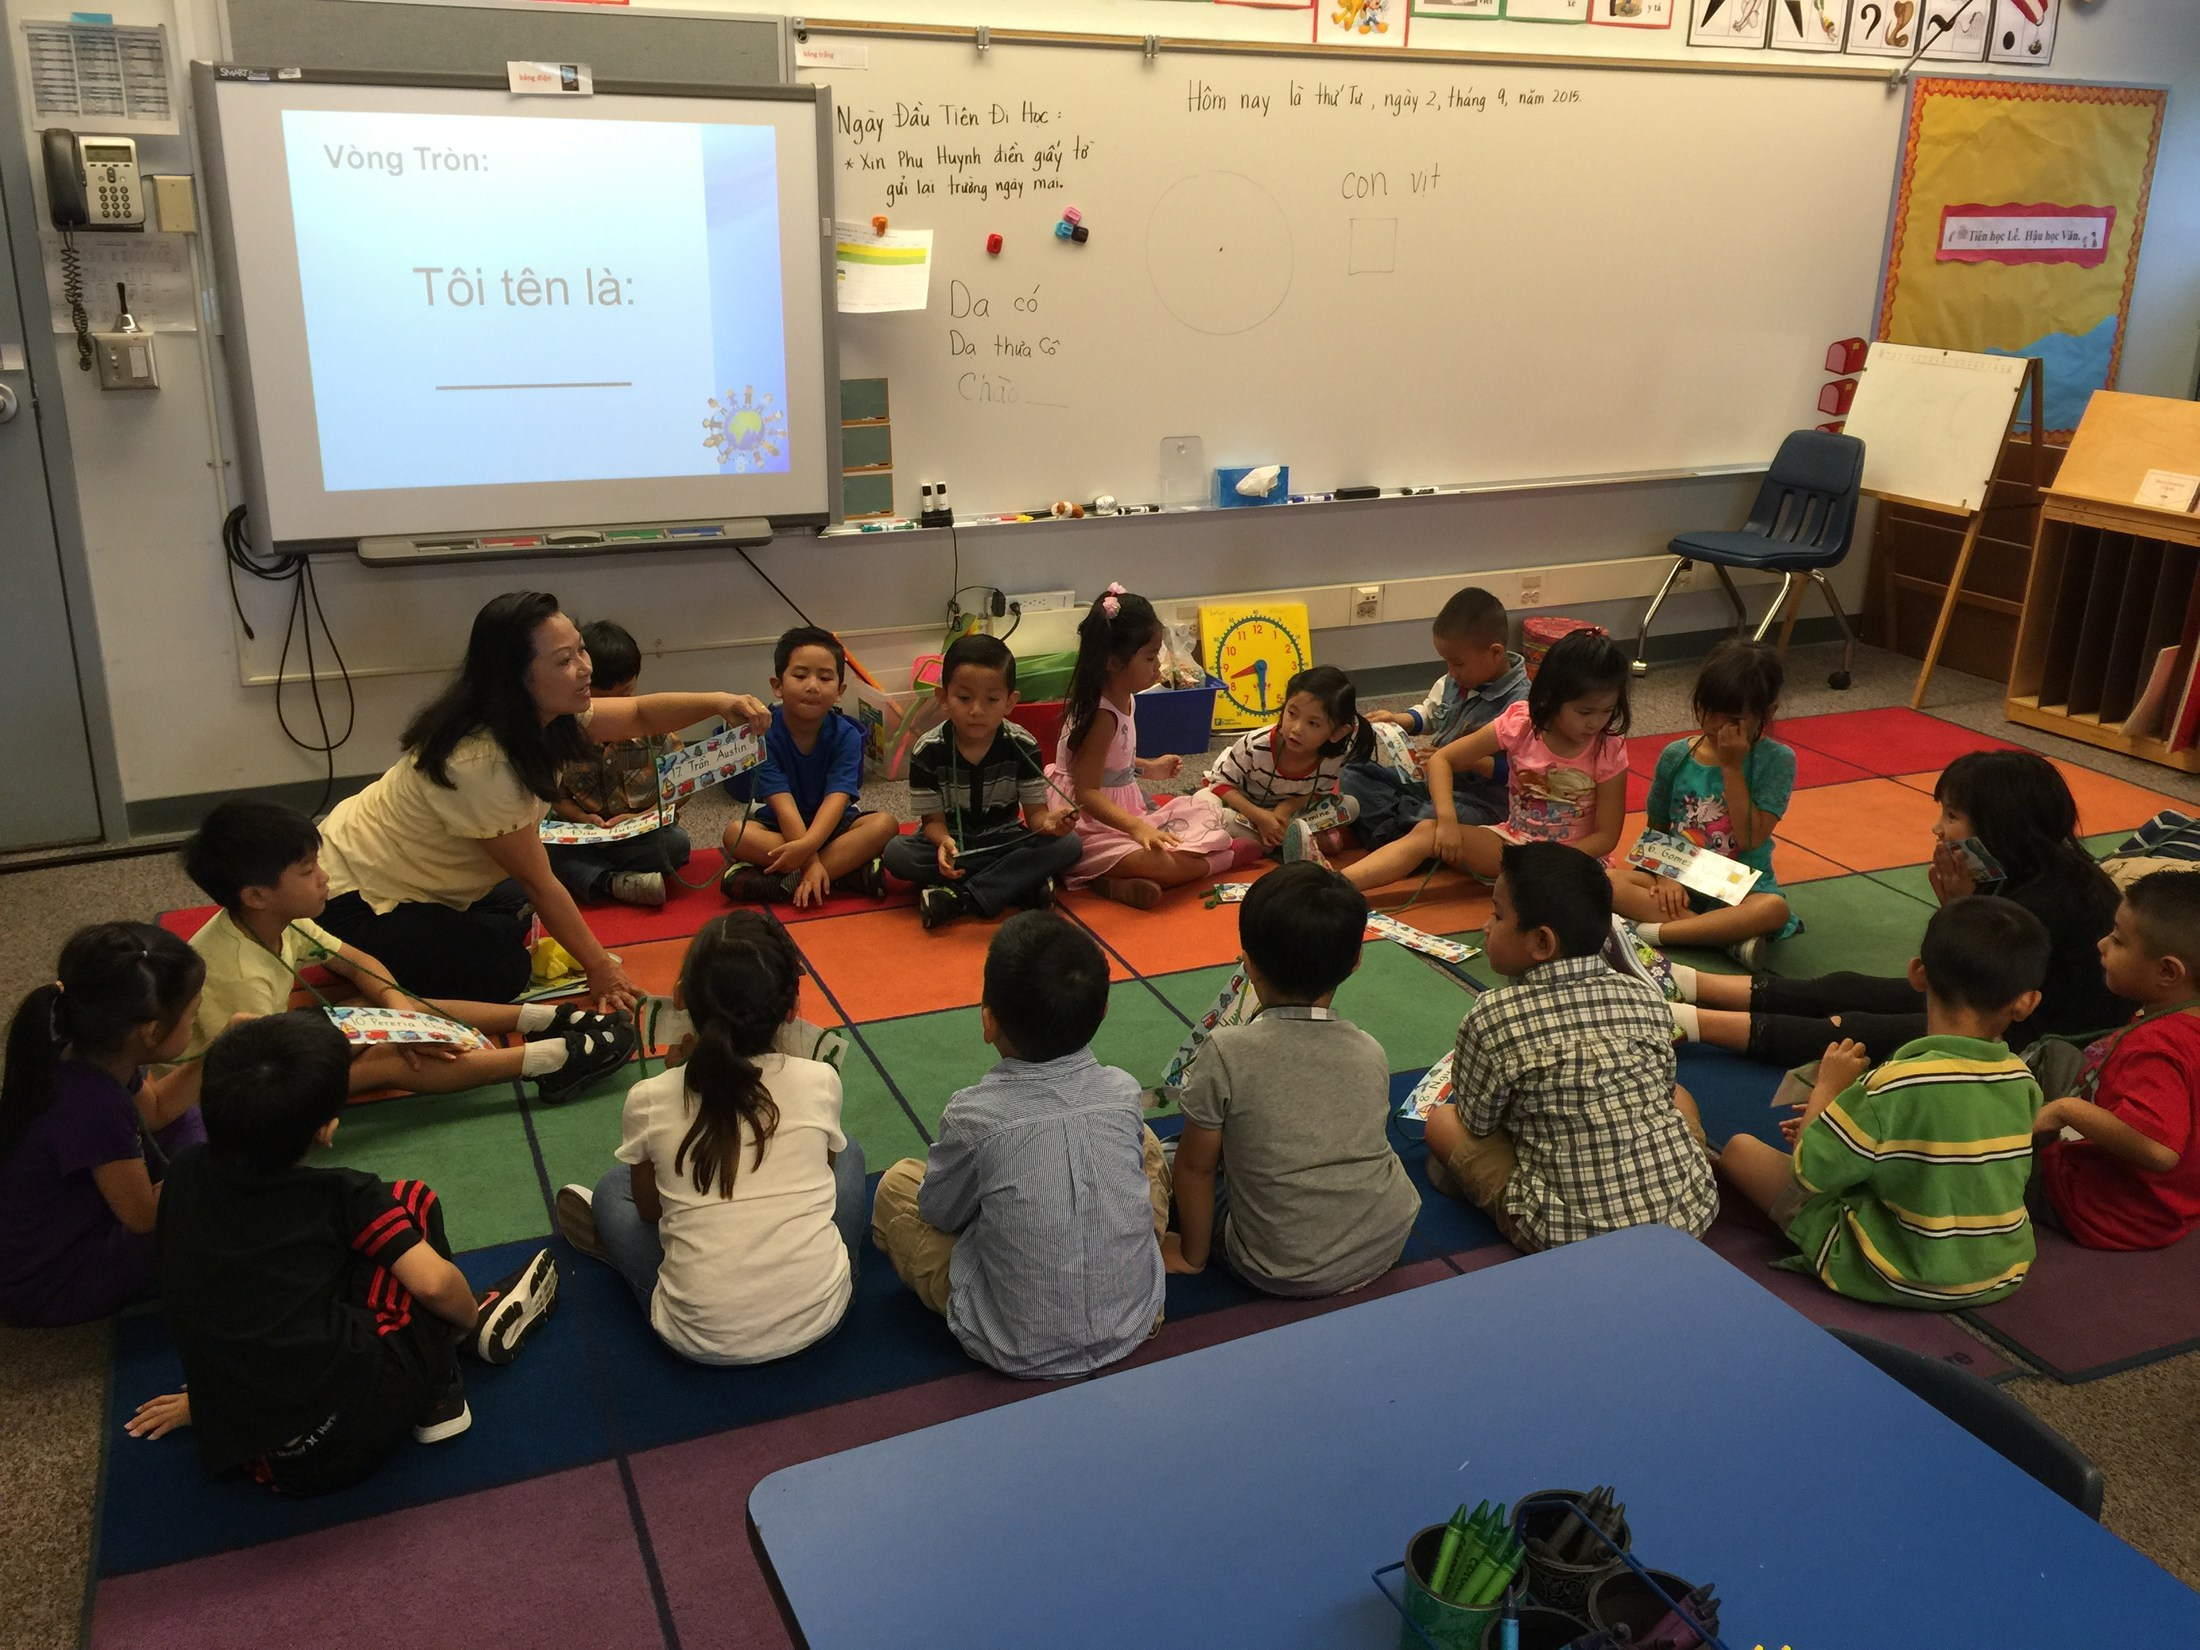 Mrs. Dang's class on the first day